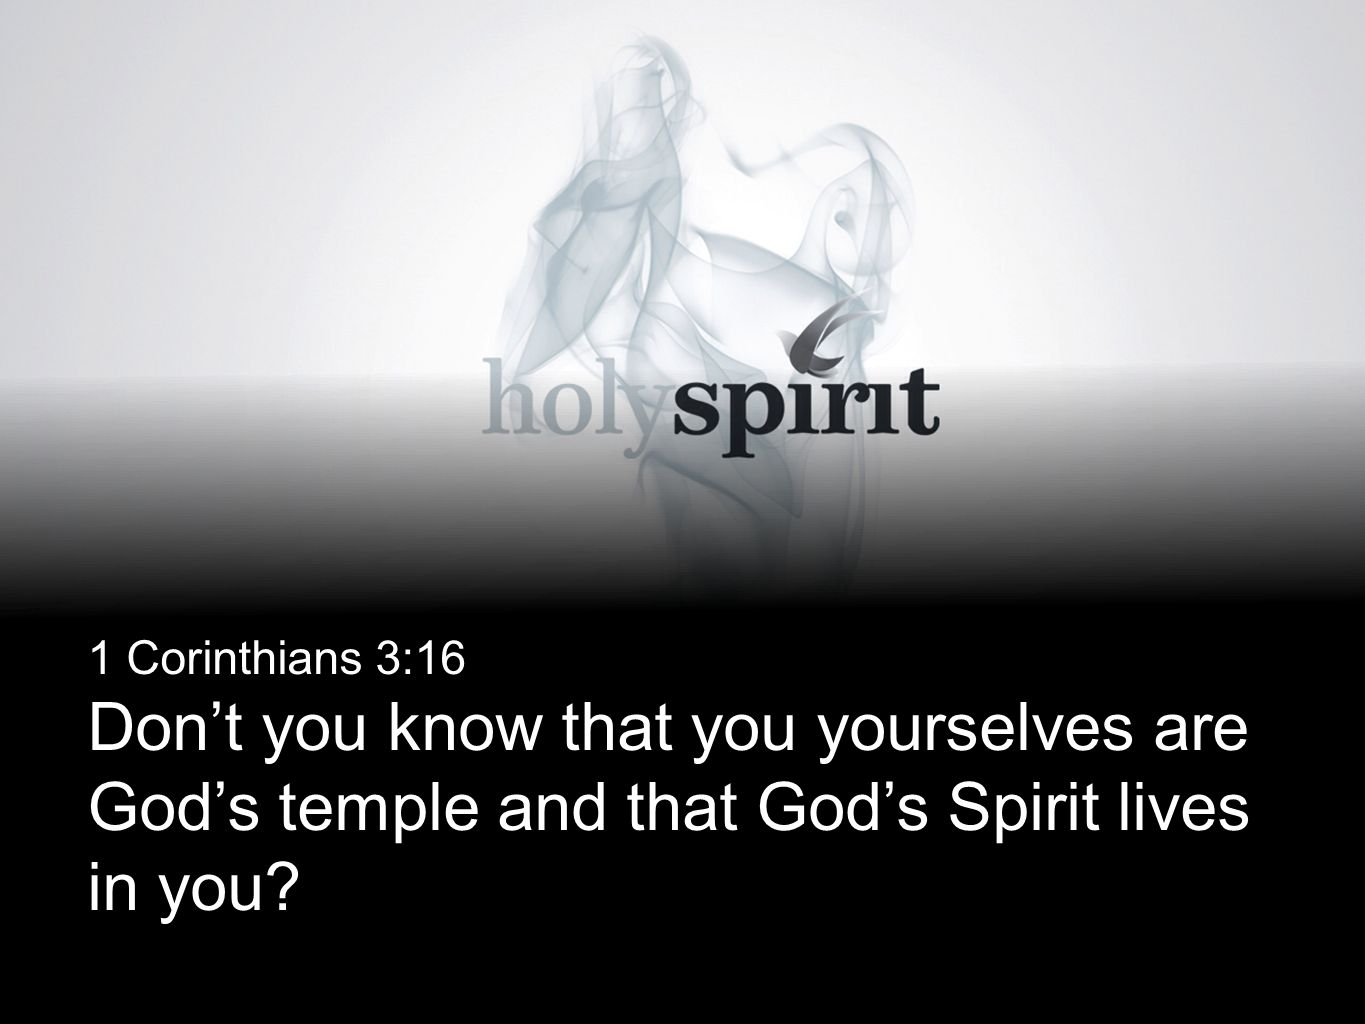 1 Corinthians 3:16 Don't you know that you yourselves are God's temple and that God's Spirit lives in you